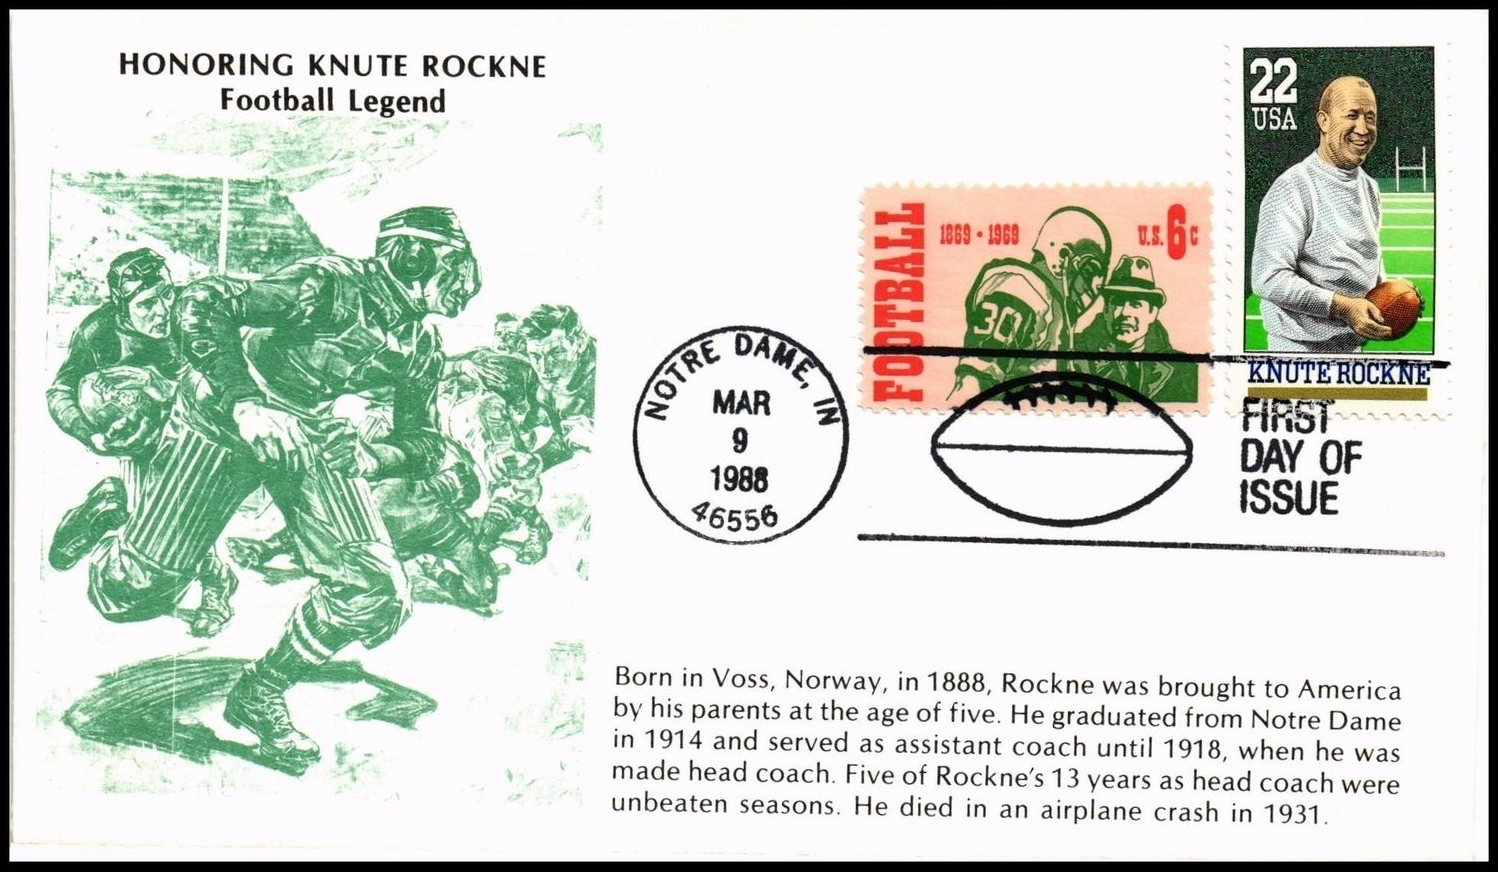 United States - Scott #2376 (1988) first day cover